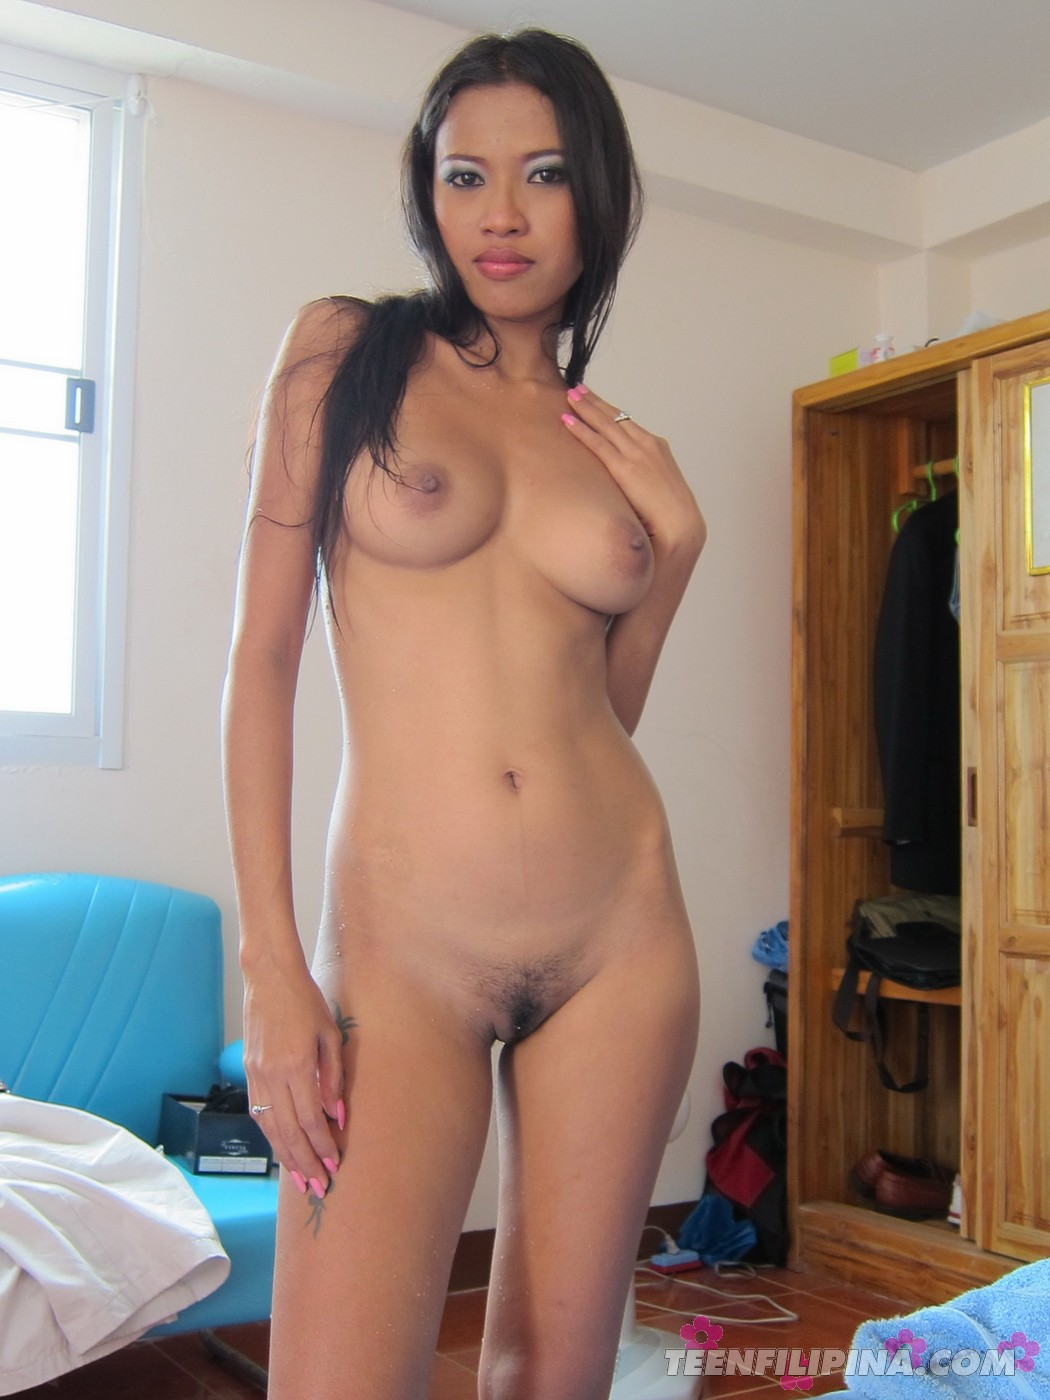 Thai amateur video girls speak